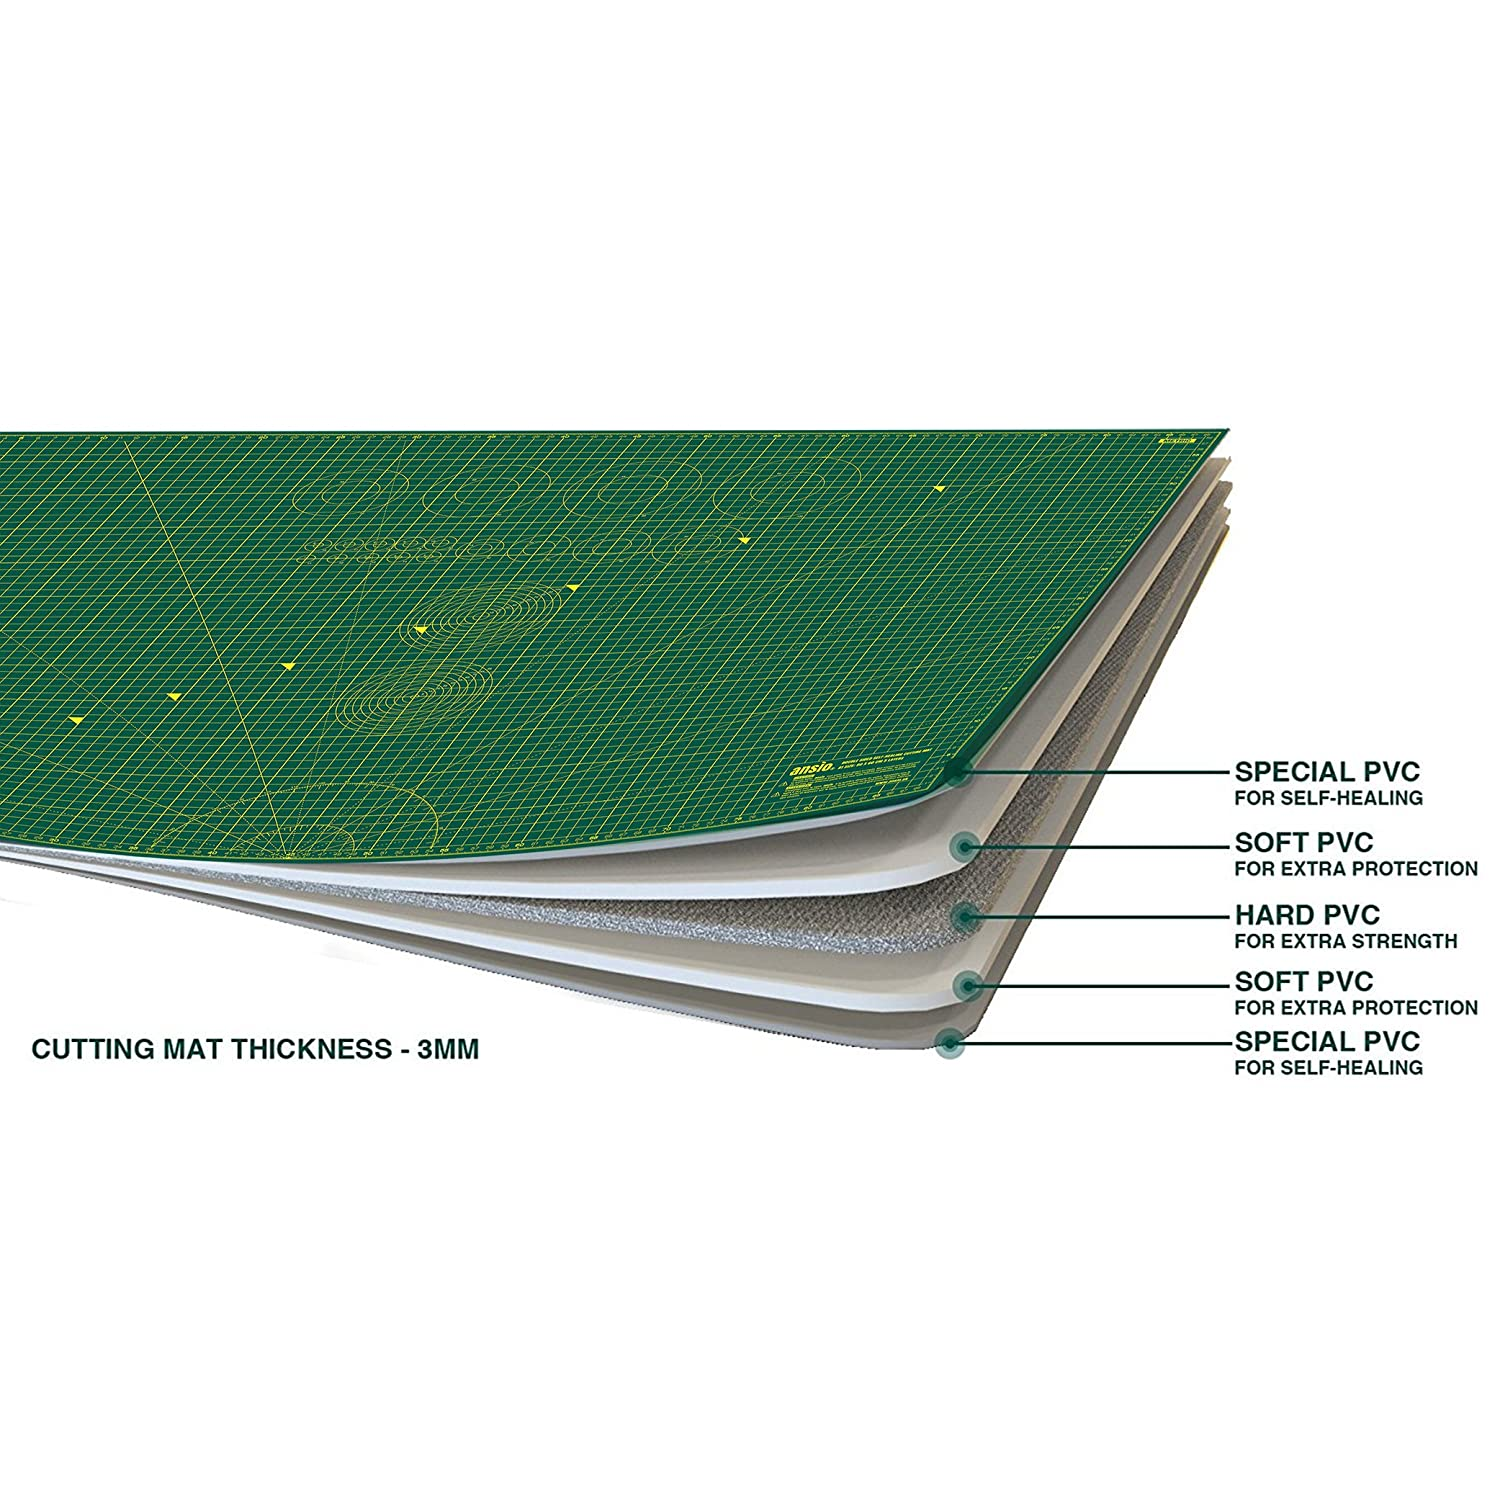 ANSIO A0 Double Sided Self Healing 5 Layers Cutting Mat Imperial/Metric 46 Inch x 33.5 Inch / 118cm x 86cm - Green